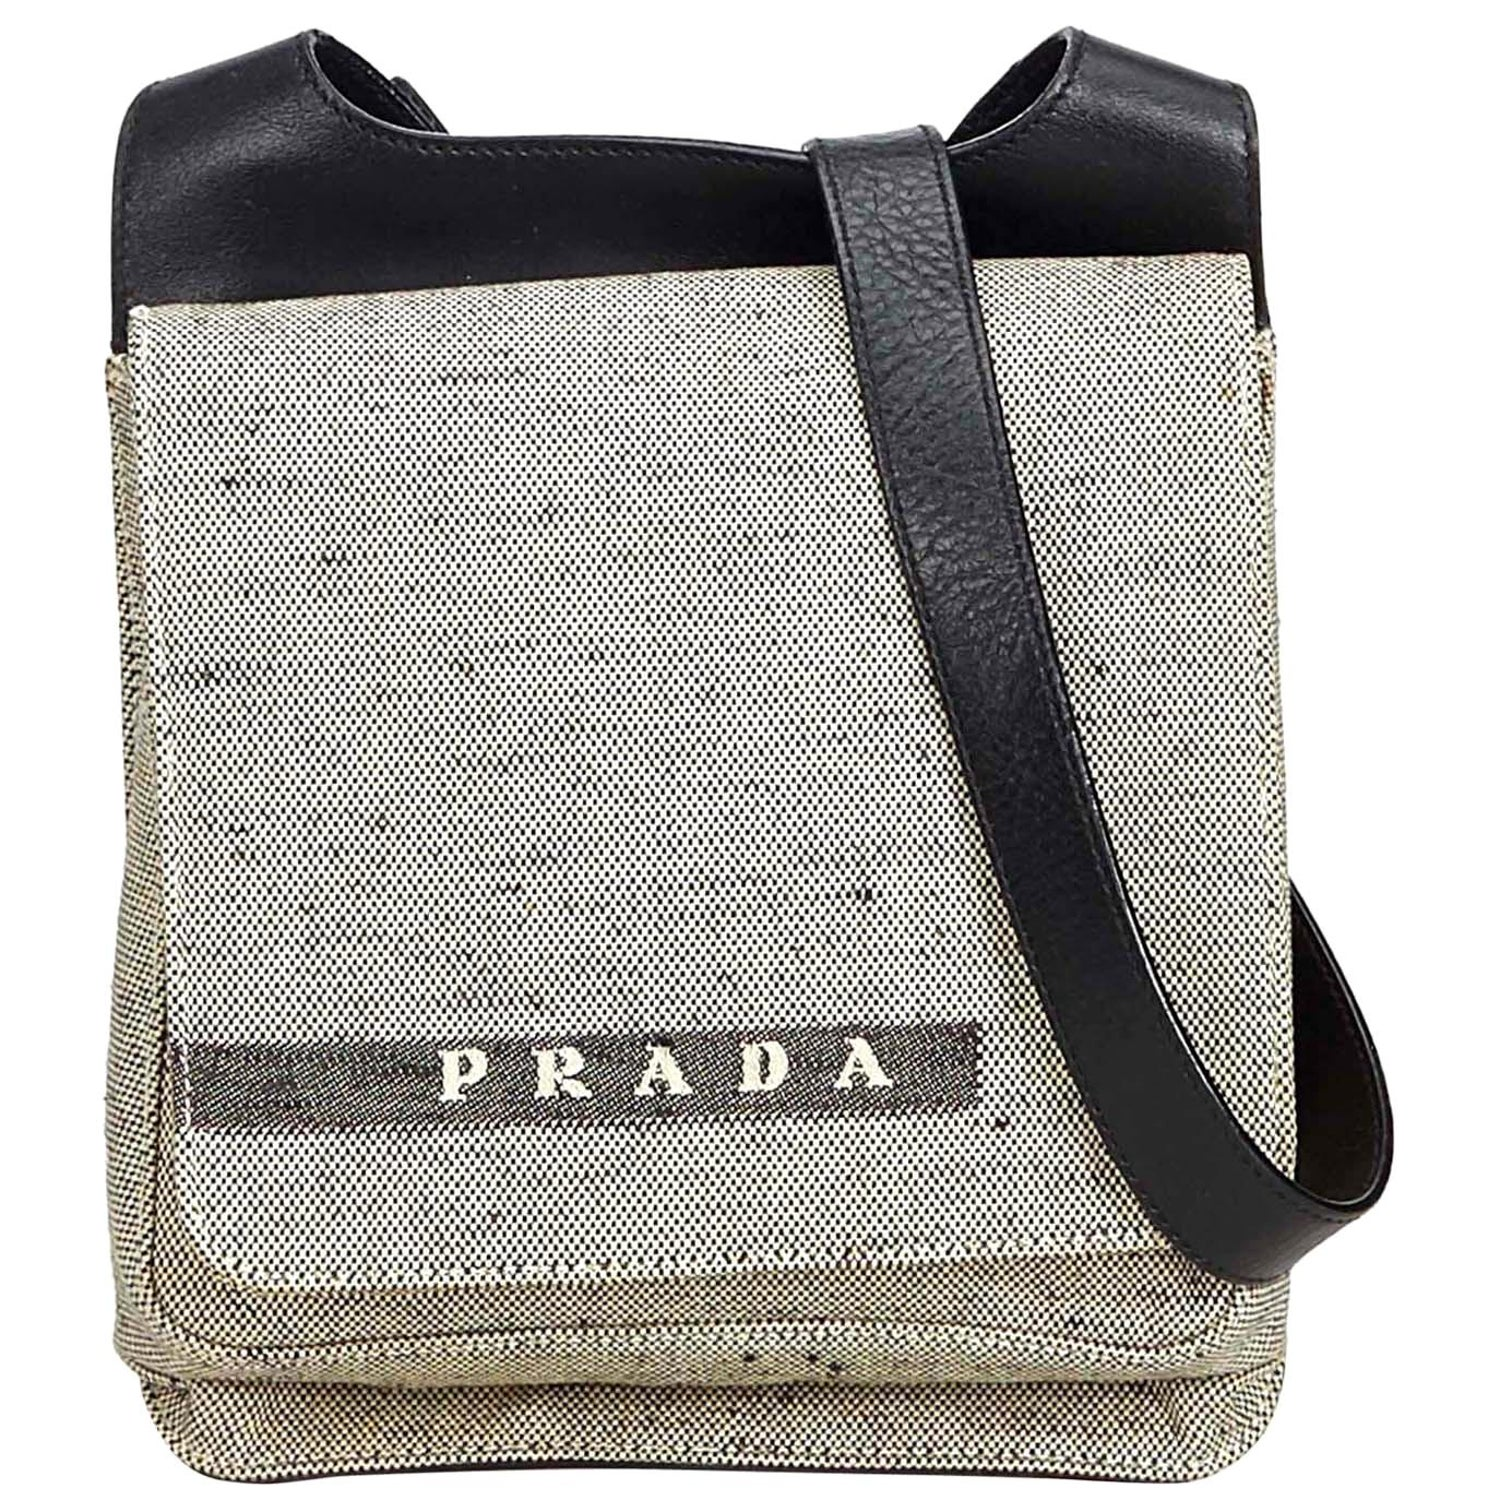 8108597ebe7363 Prada White Ivory Canvas Fabric Crossbody Bag Italy For Sale at 1stdibs